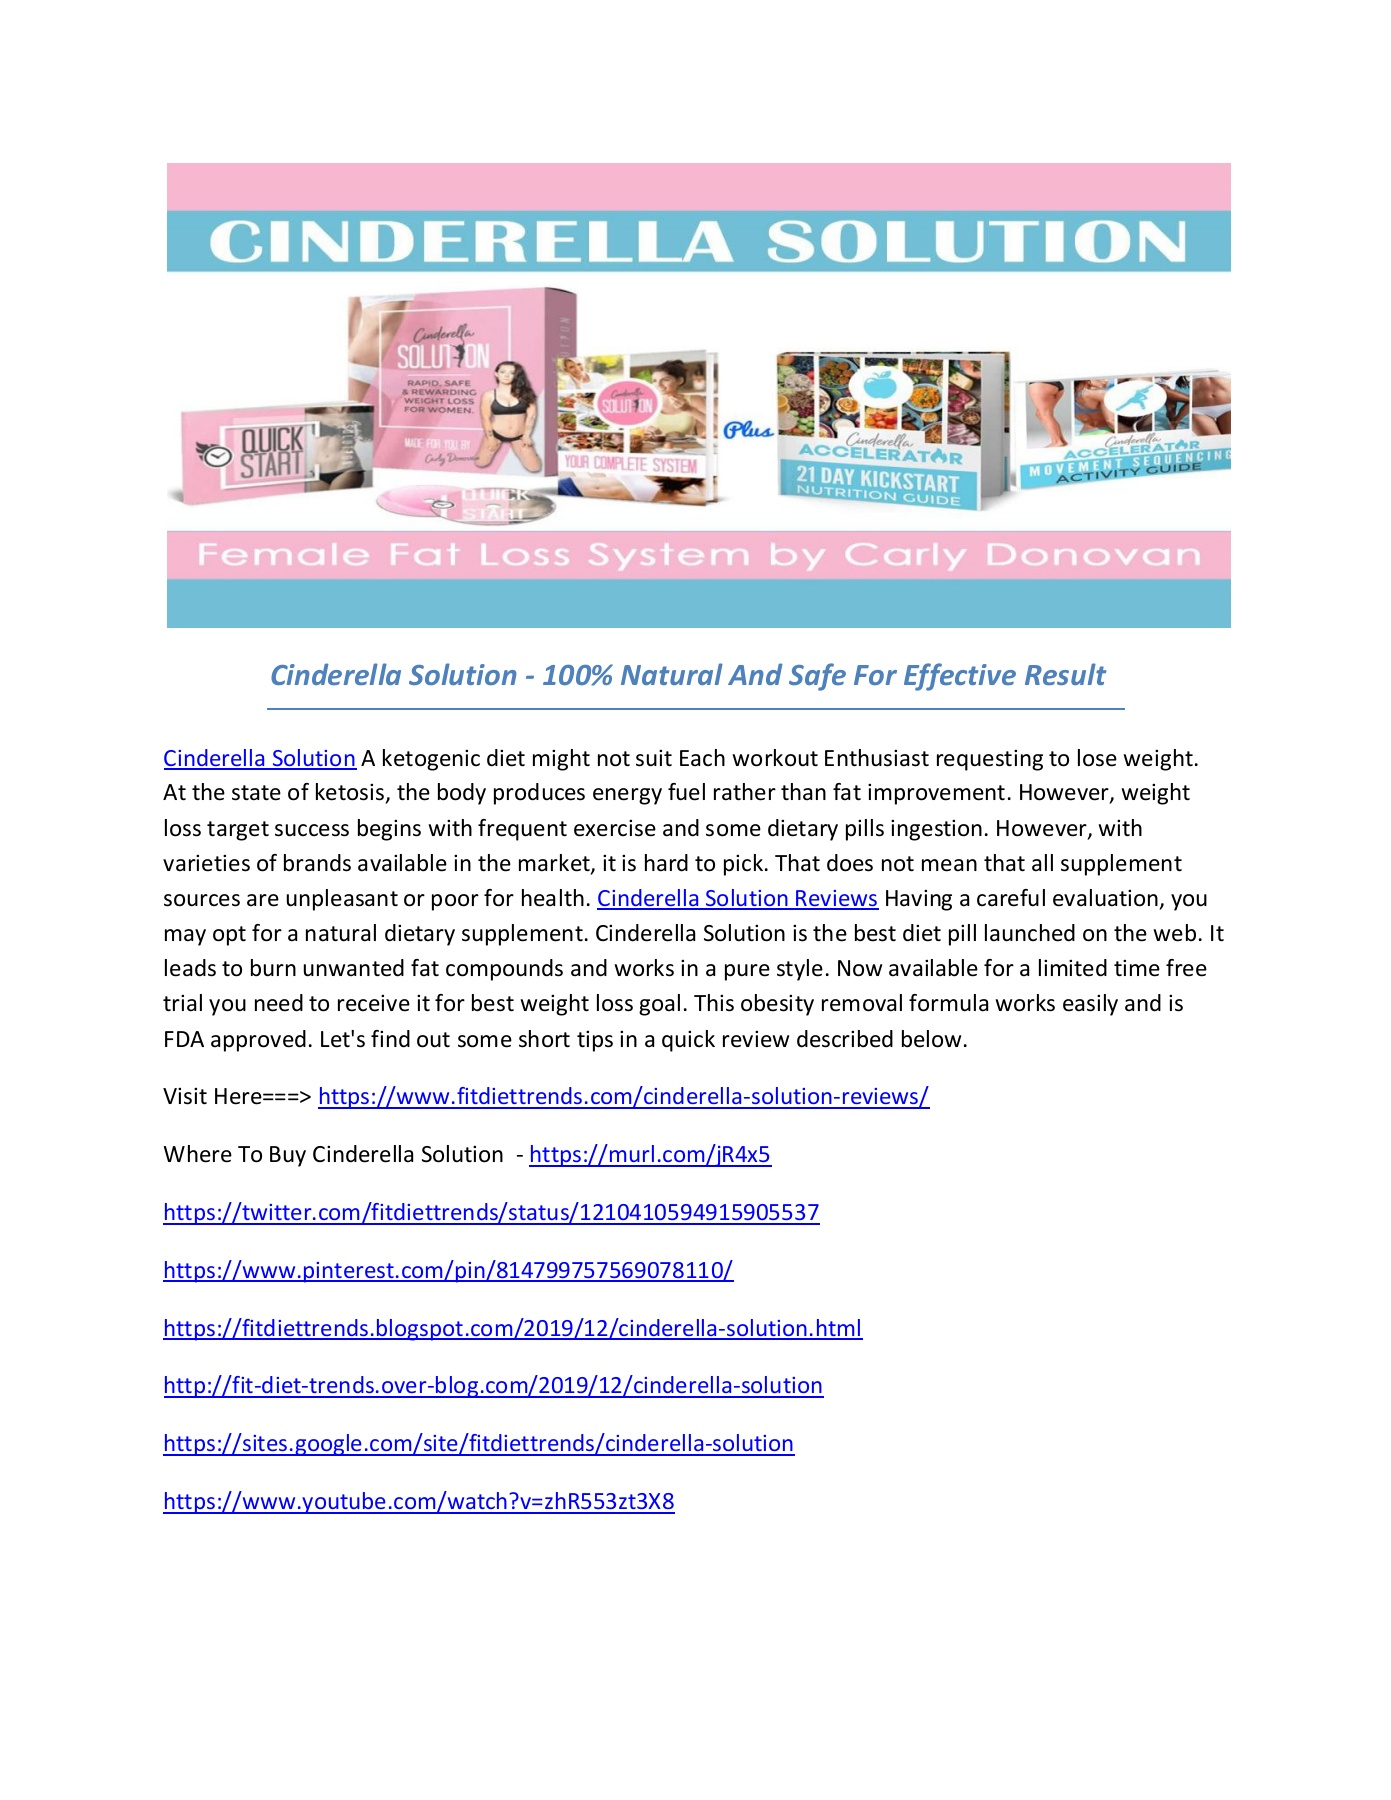 80% Off Coupon Cinderella Solution 2020